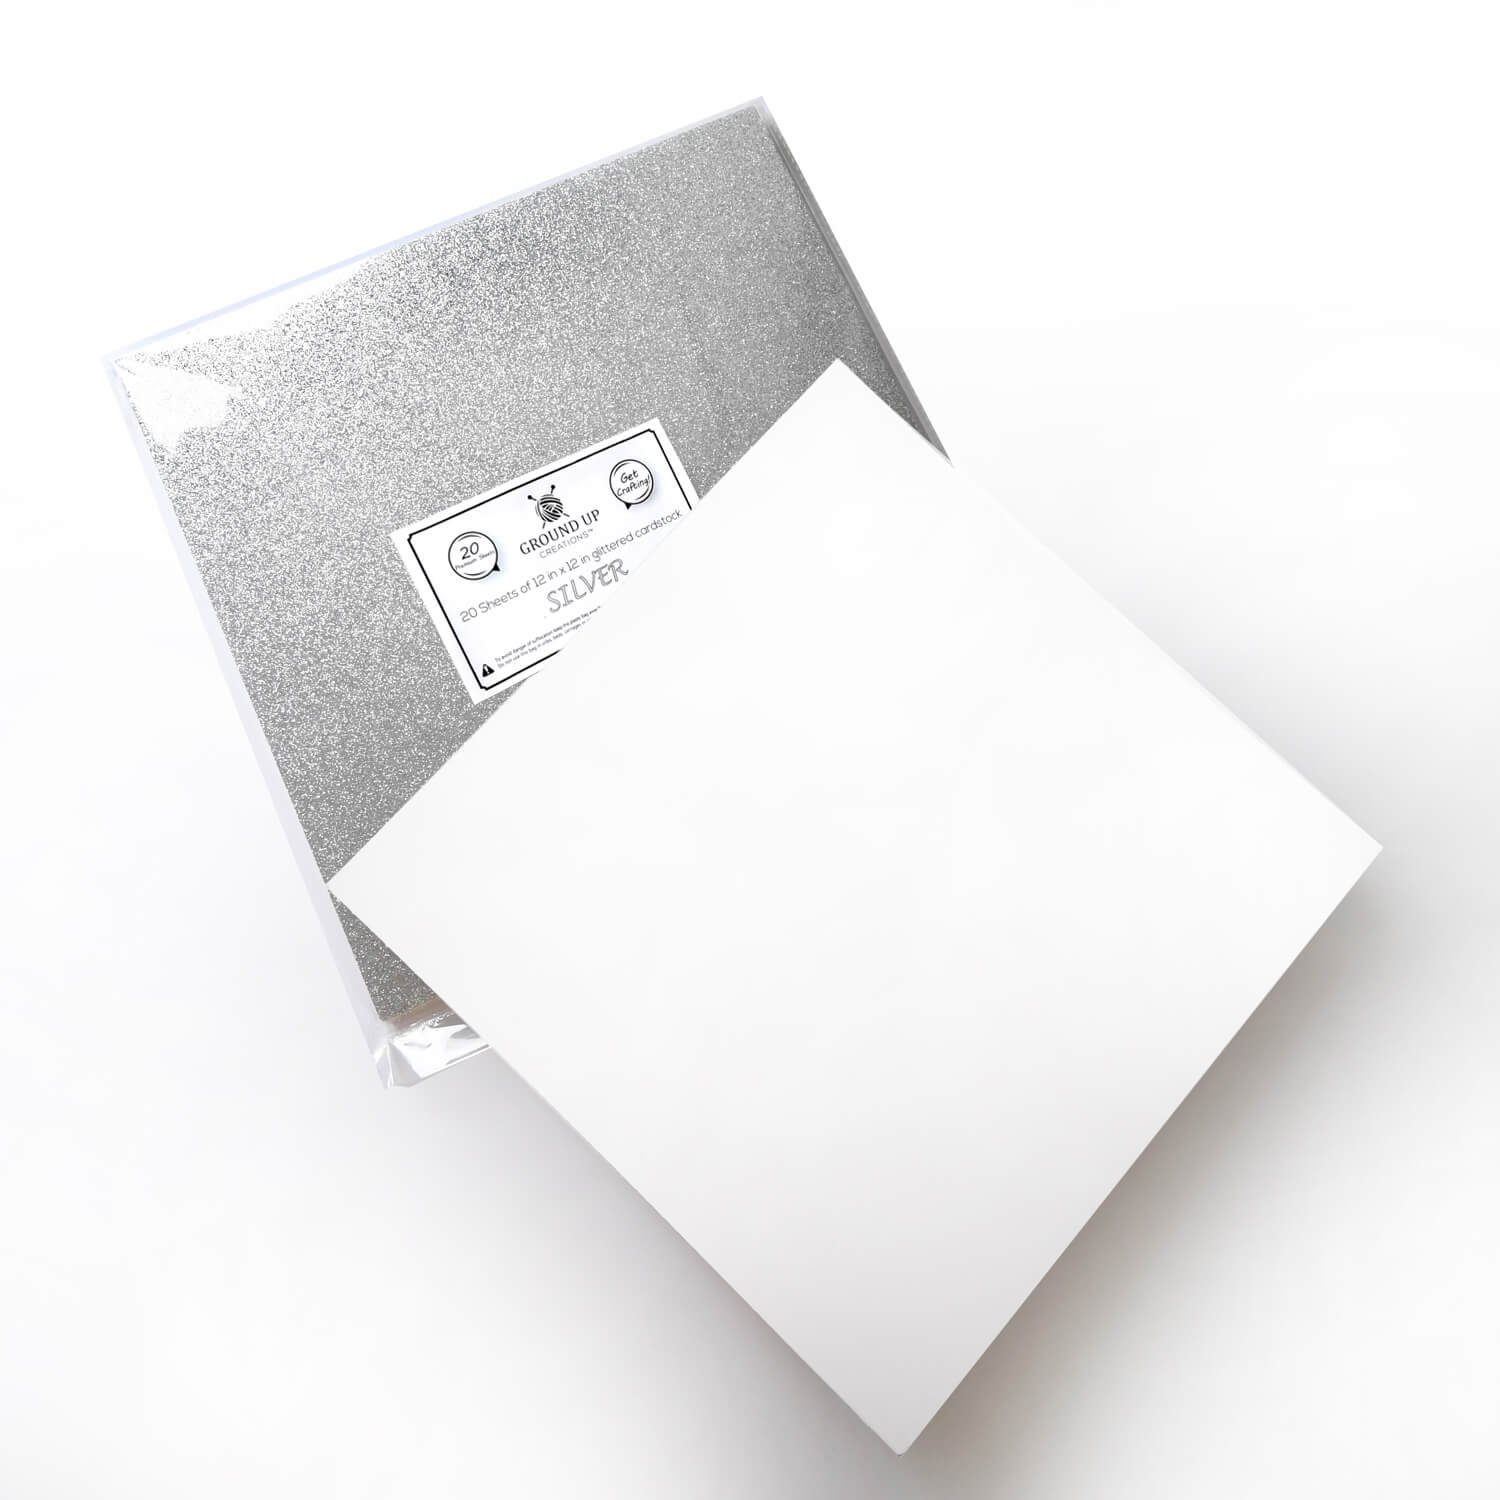 watermark postcard size cardstock paper This cardstock printer paper is available in heavy 60, 80 and 100 lb weights to give your work a professional quality super bright photo white delivers excellent image contrast and color reproduction.